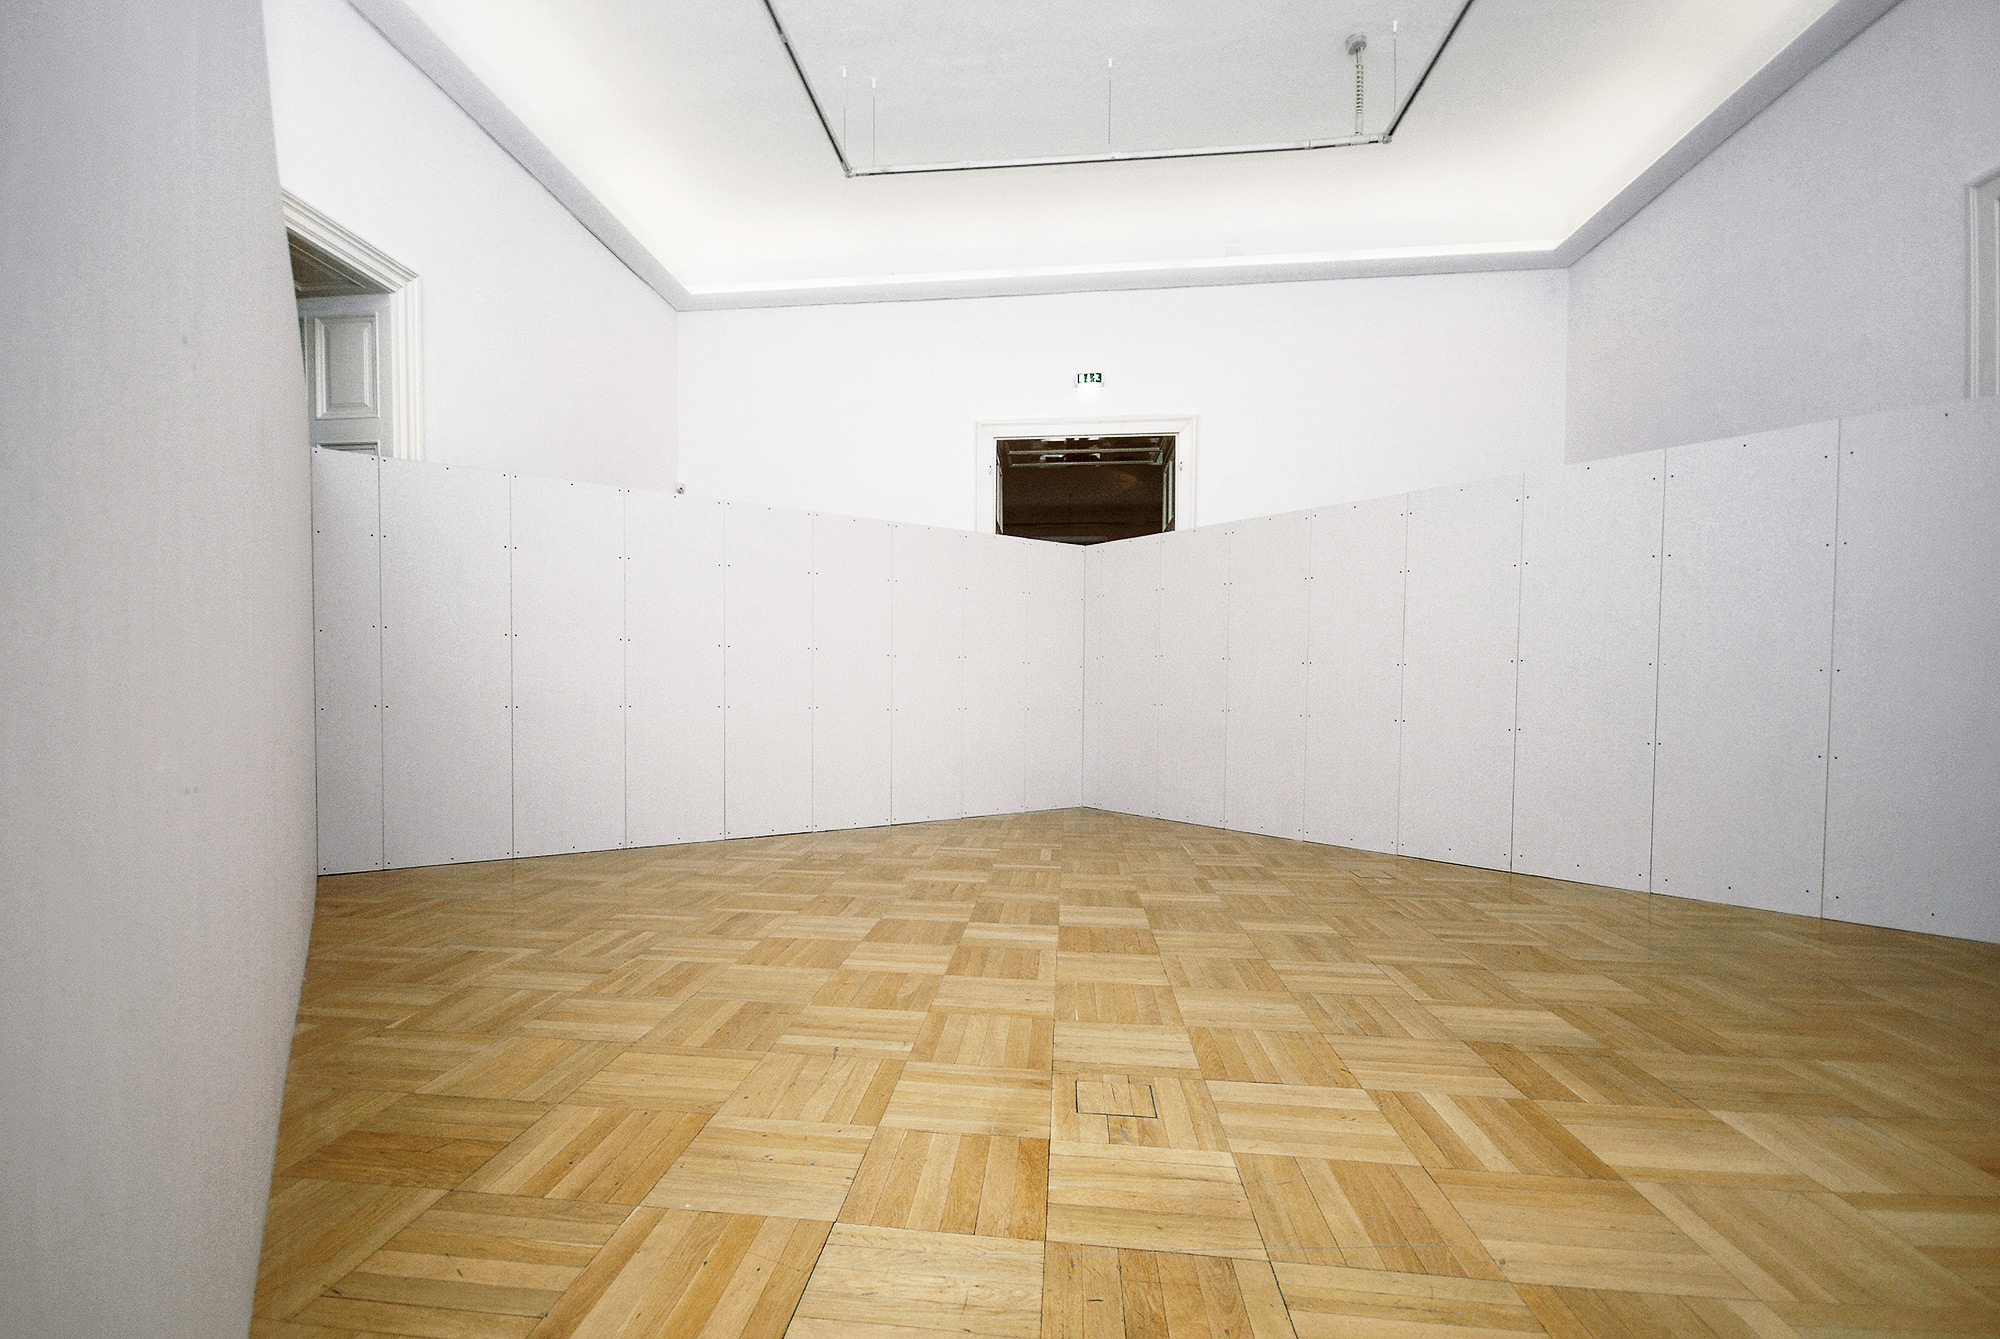 Famed, Untitled [Spatial Reconfiguration #6], 2007